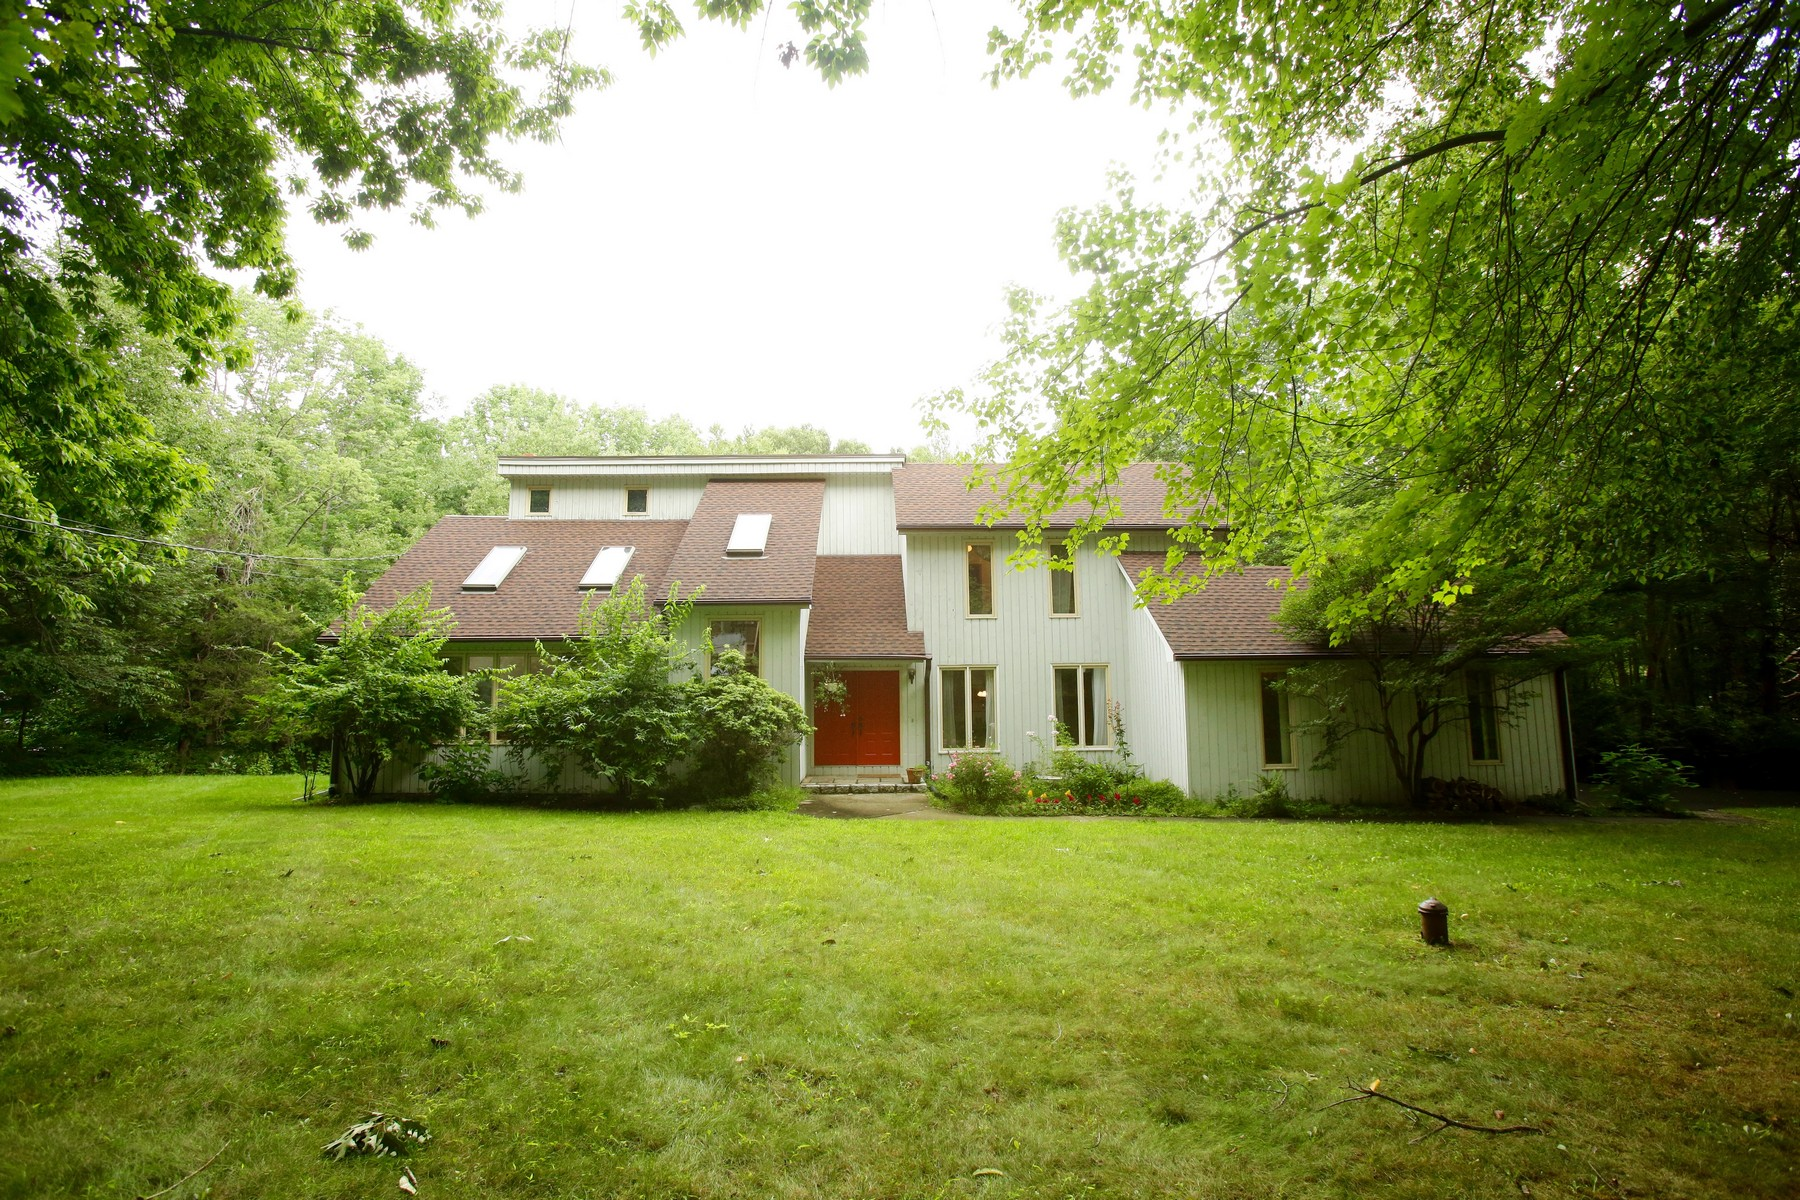 Single Family Home for Sale at Wonderful Contemporary and Excellent Value in Lower Easton 11 Deepwood Road Easton, Connecticut 06612 United States